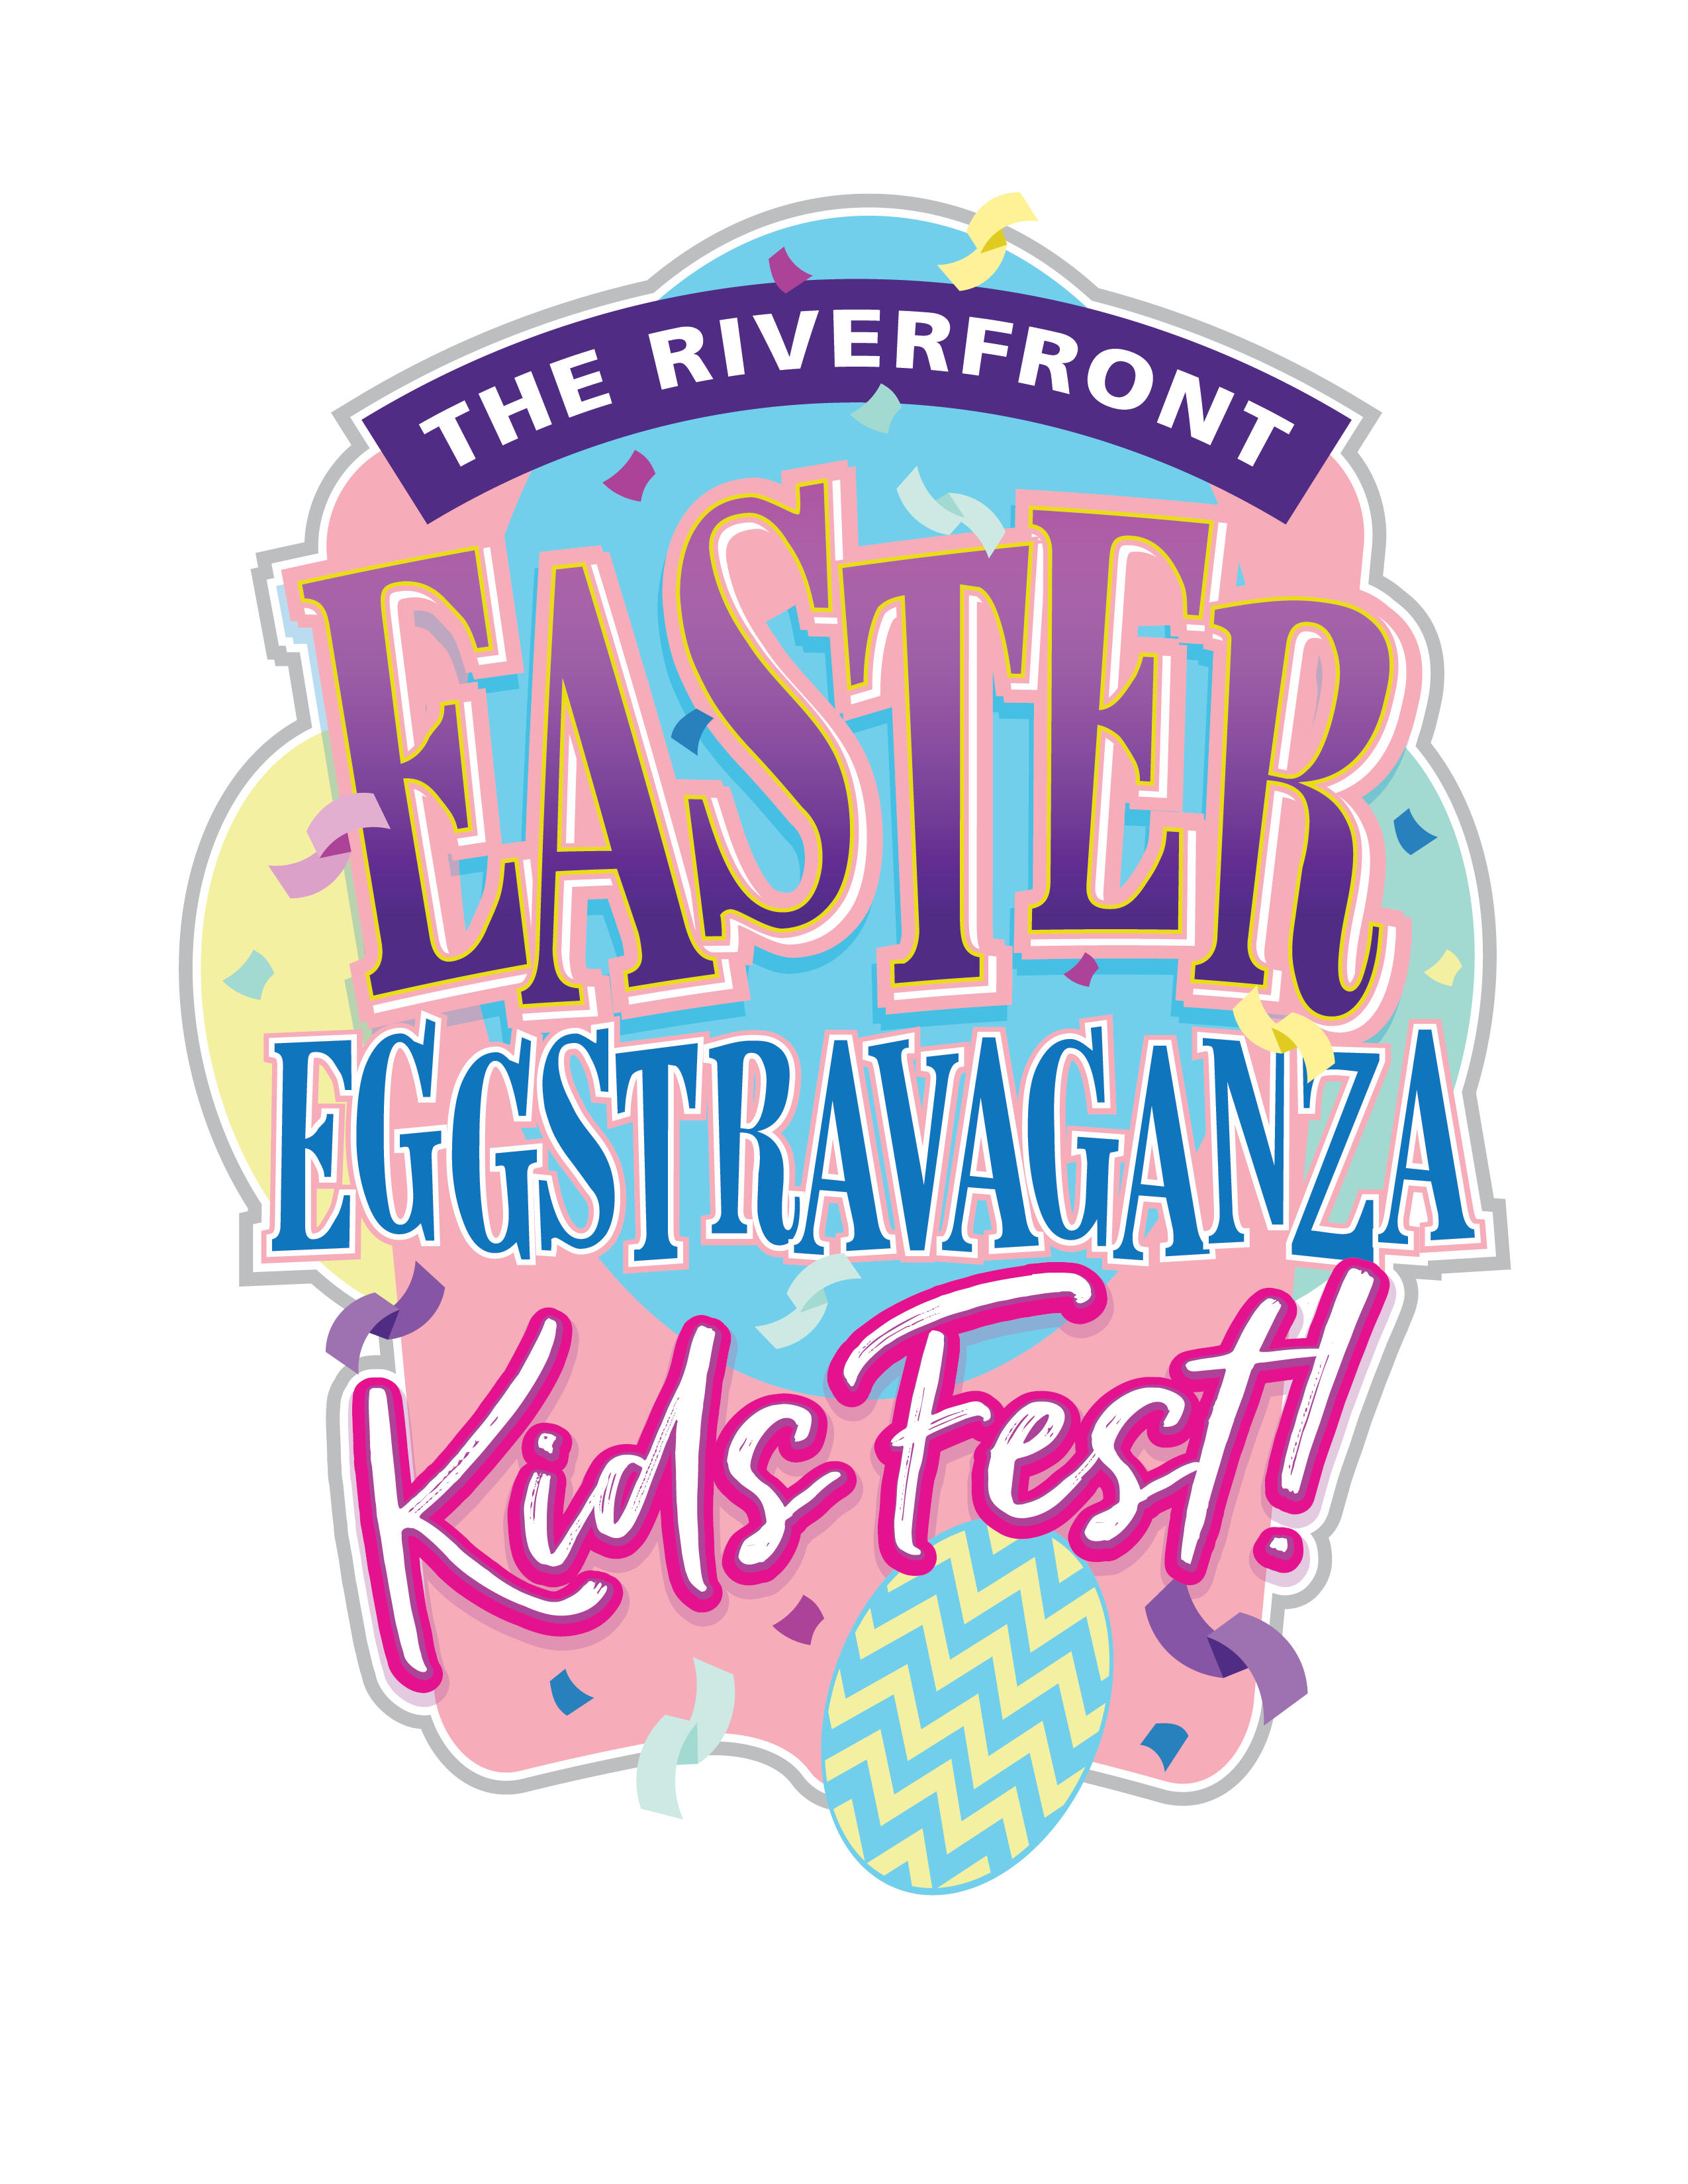 The 2nd Annual Riverfront Easter Eggstravaganza Kids Fest